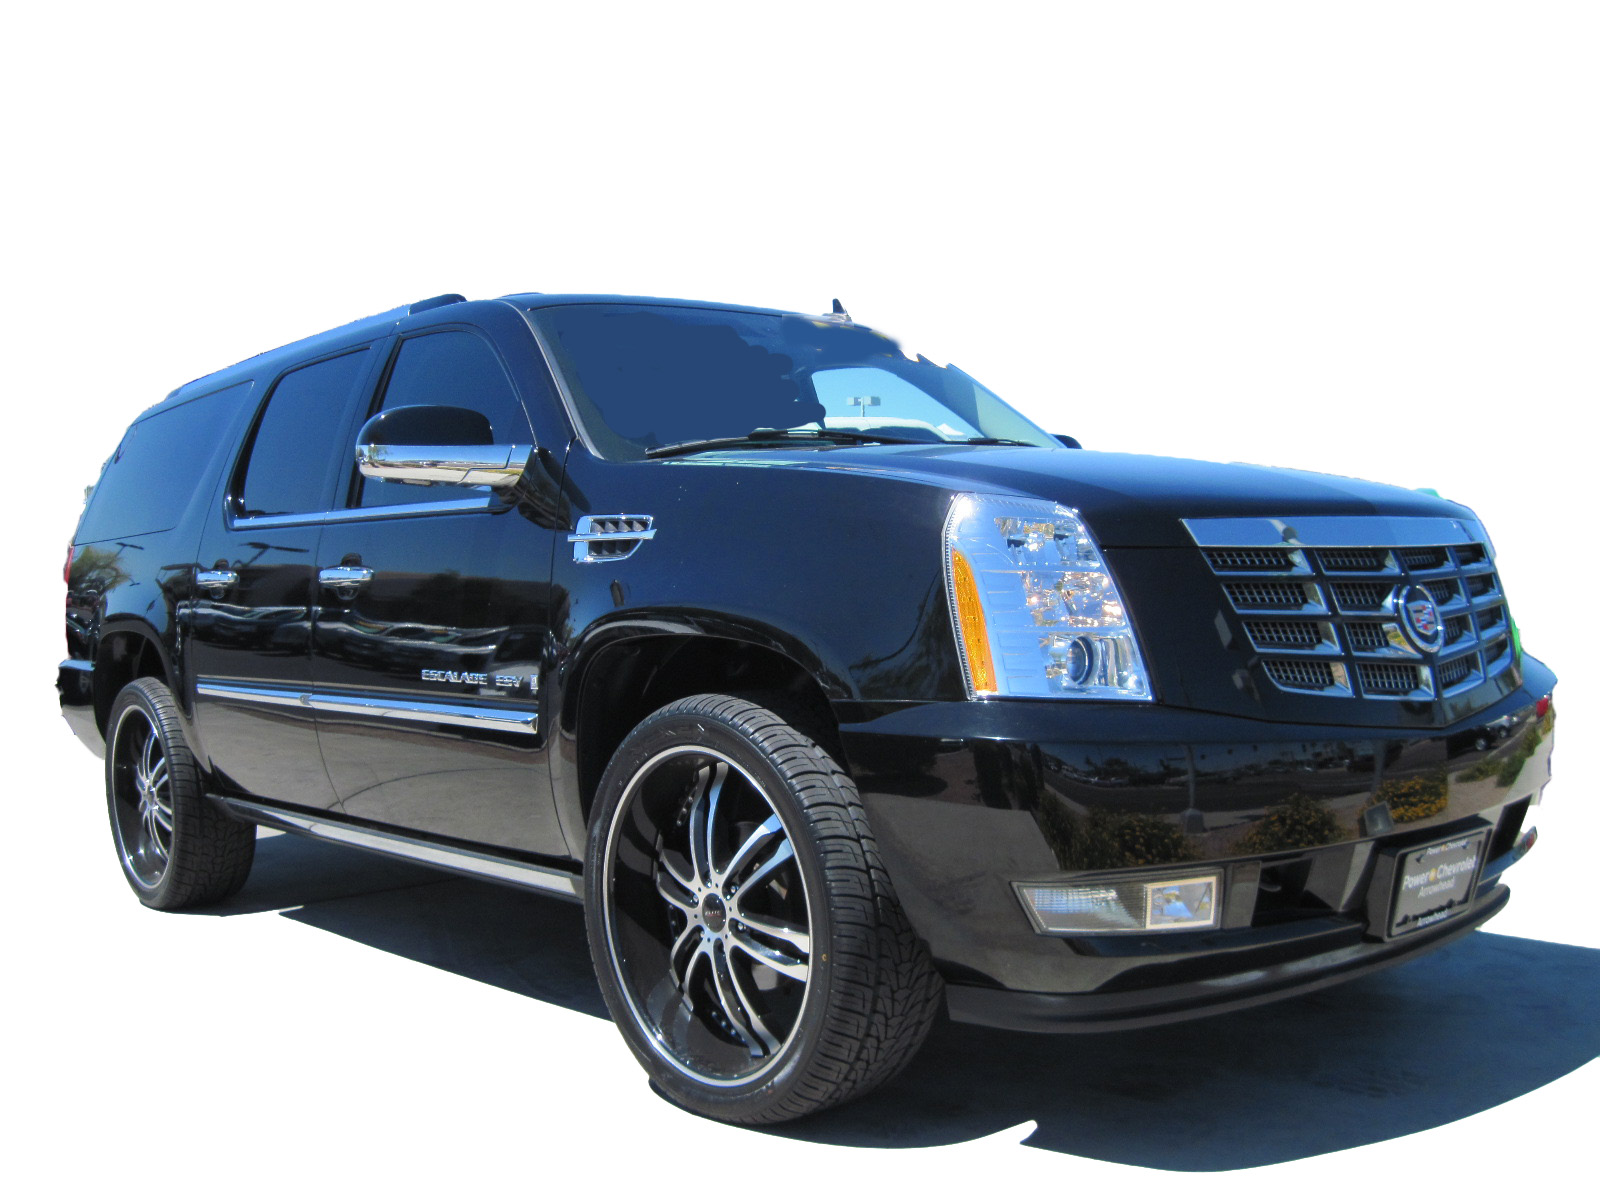 luxury cars in arizona 2007 cadillac escalade esv. Cars Review. Best American Auto & Cars Review